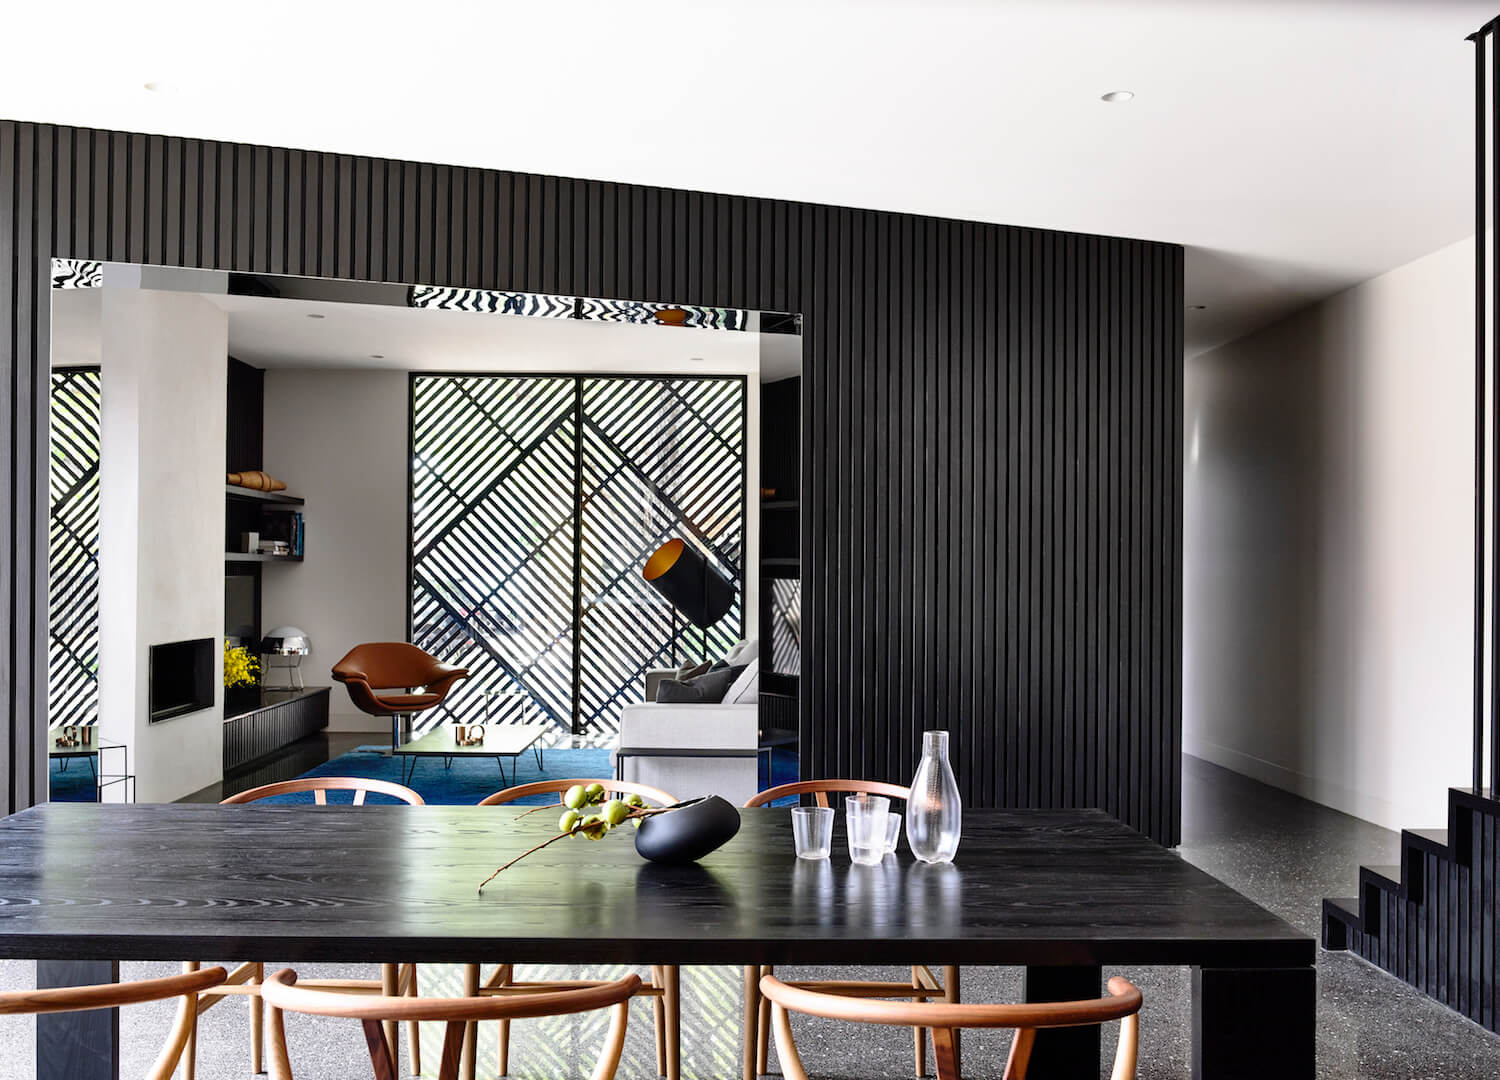 est living australian interiors washington avenue townhouse pandolfini architects 14